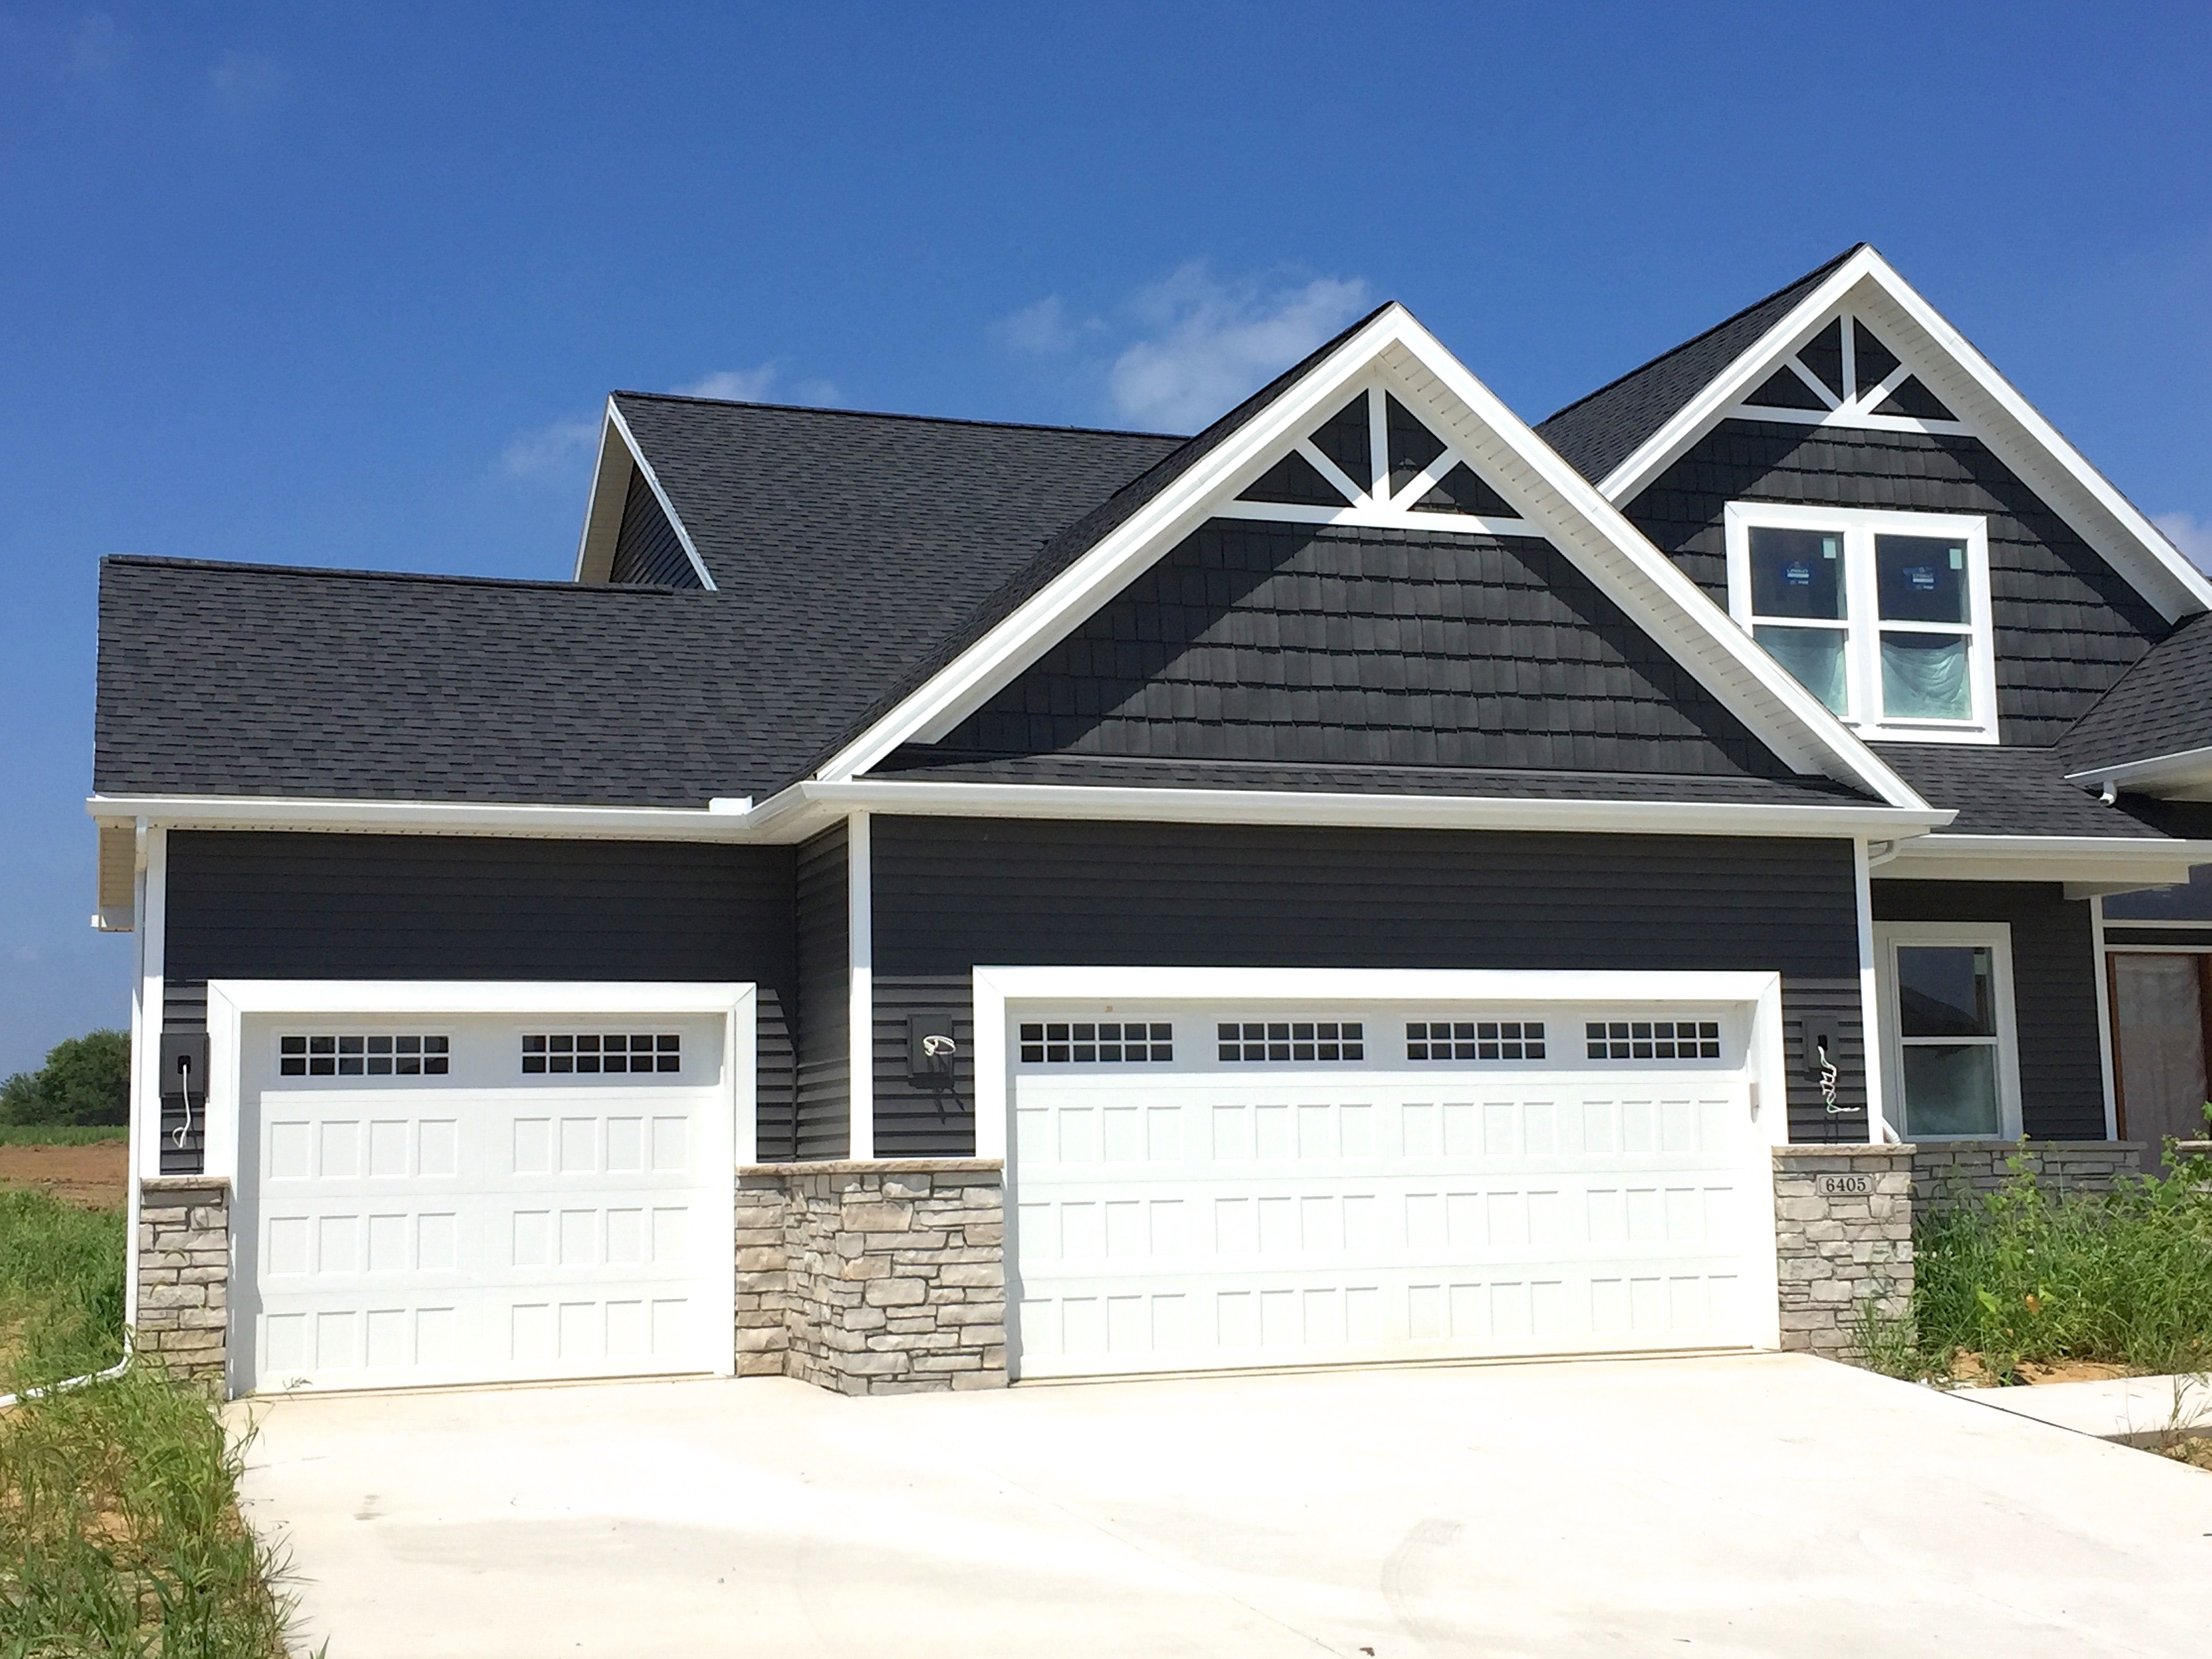 Royal ironstone dark grey siding and dark grey shakes for Exterior house decorative accents